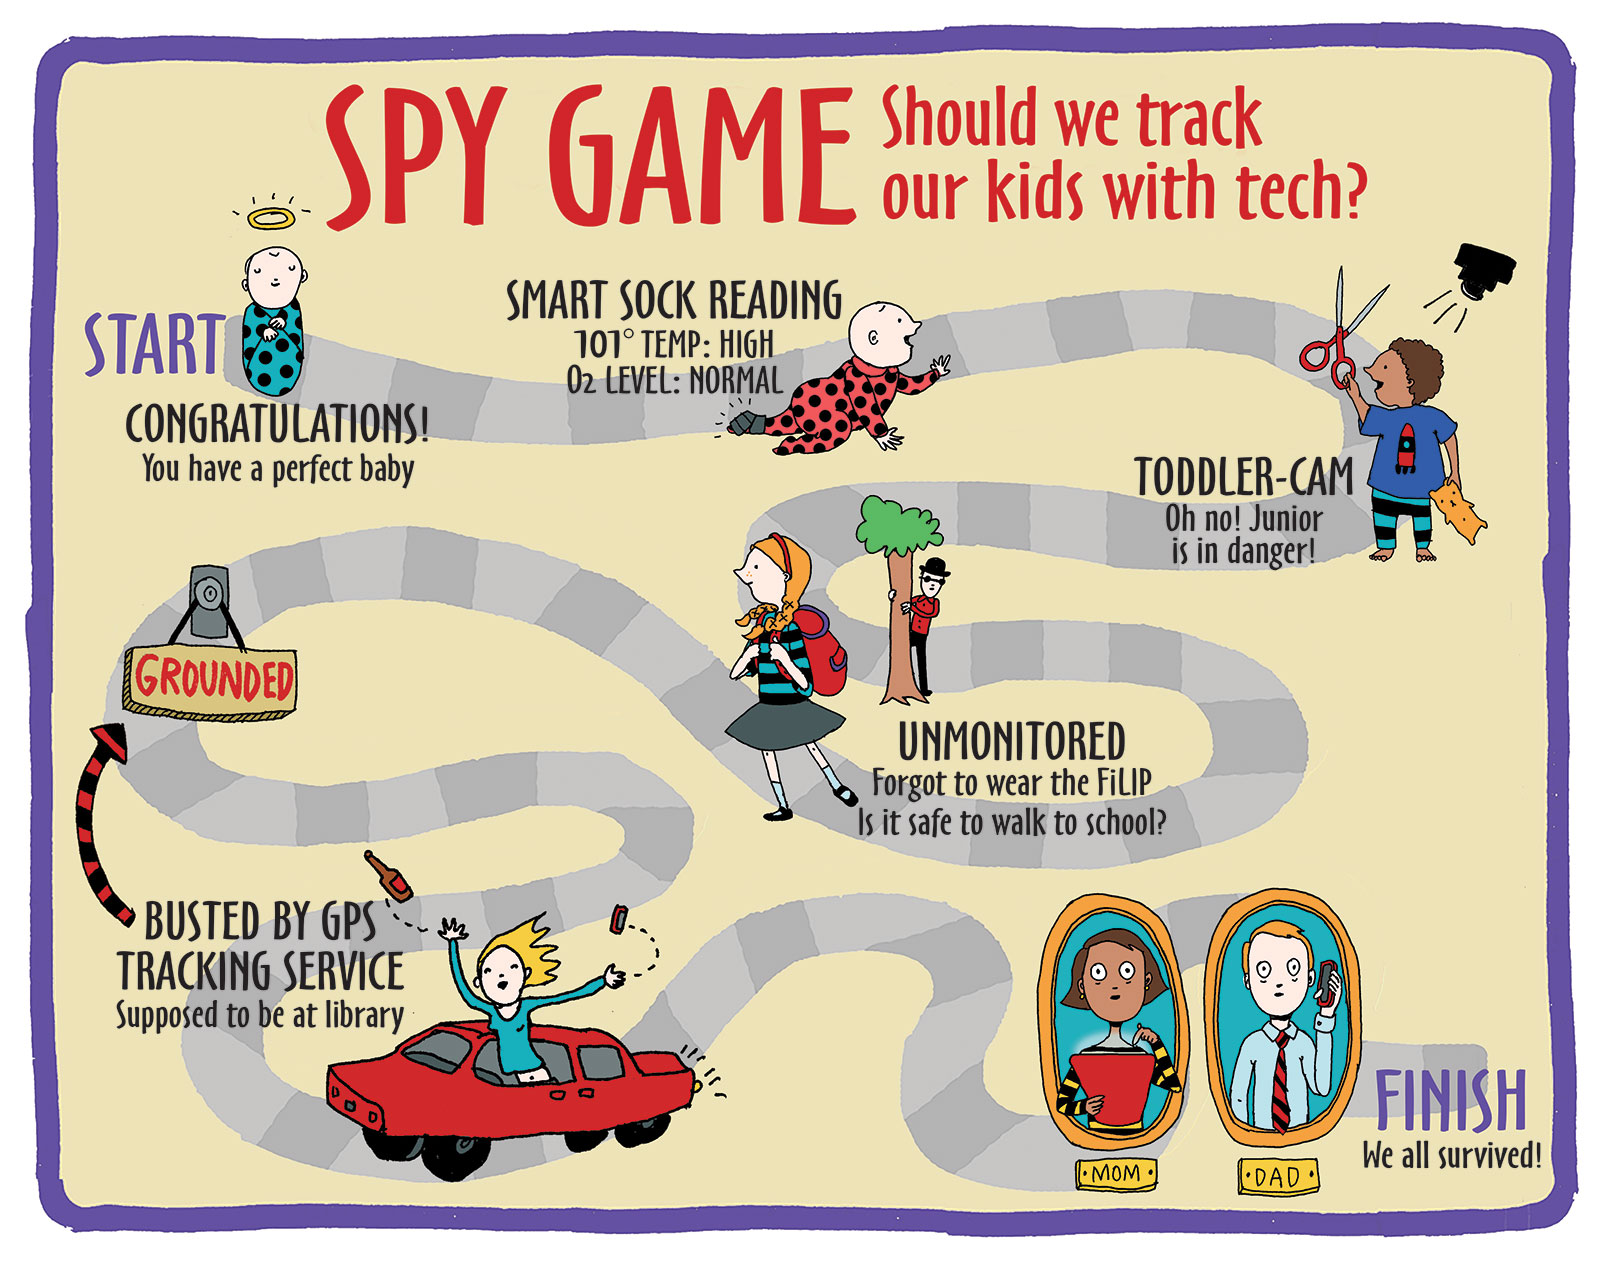 Spy game should we track our kids with tech parentmap for There is there are pictures